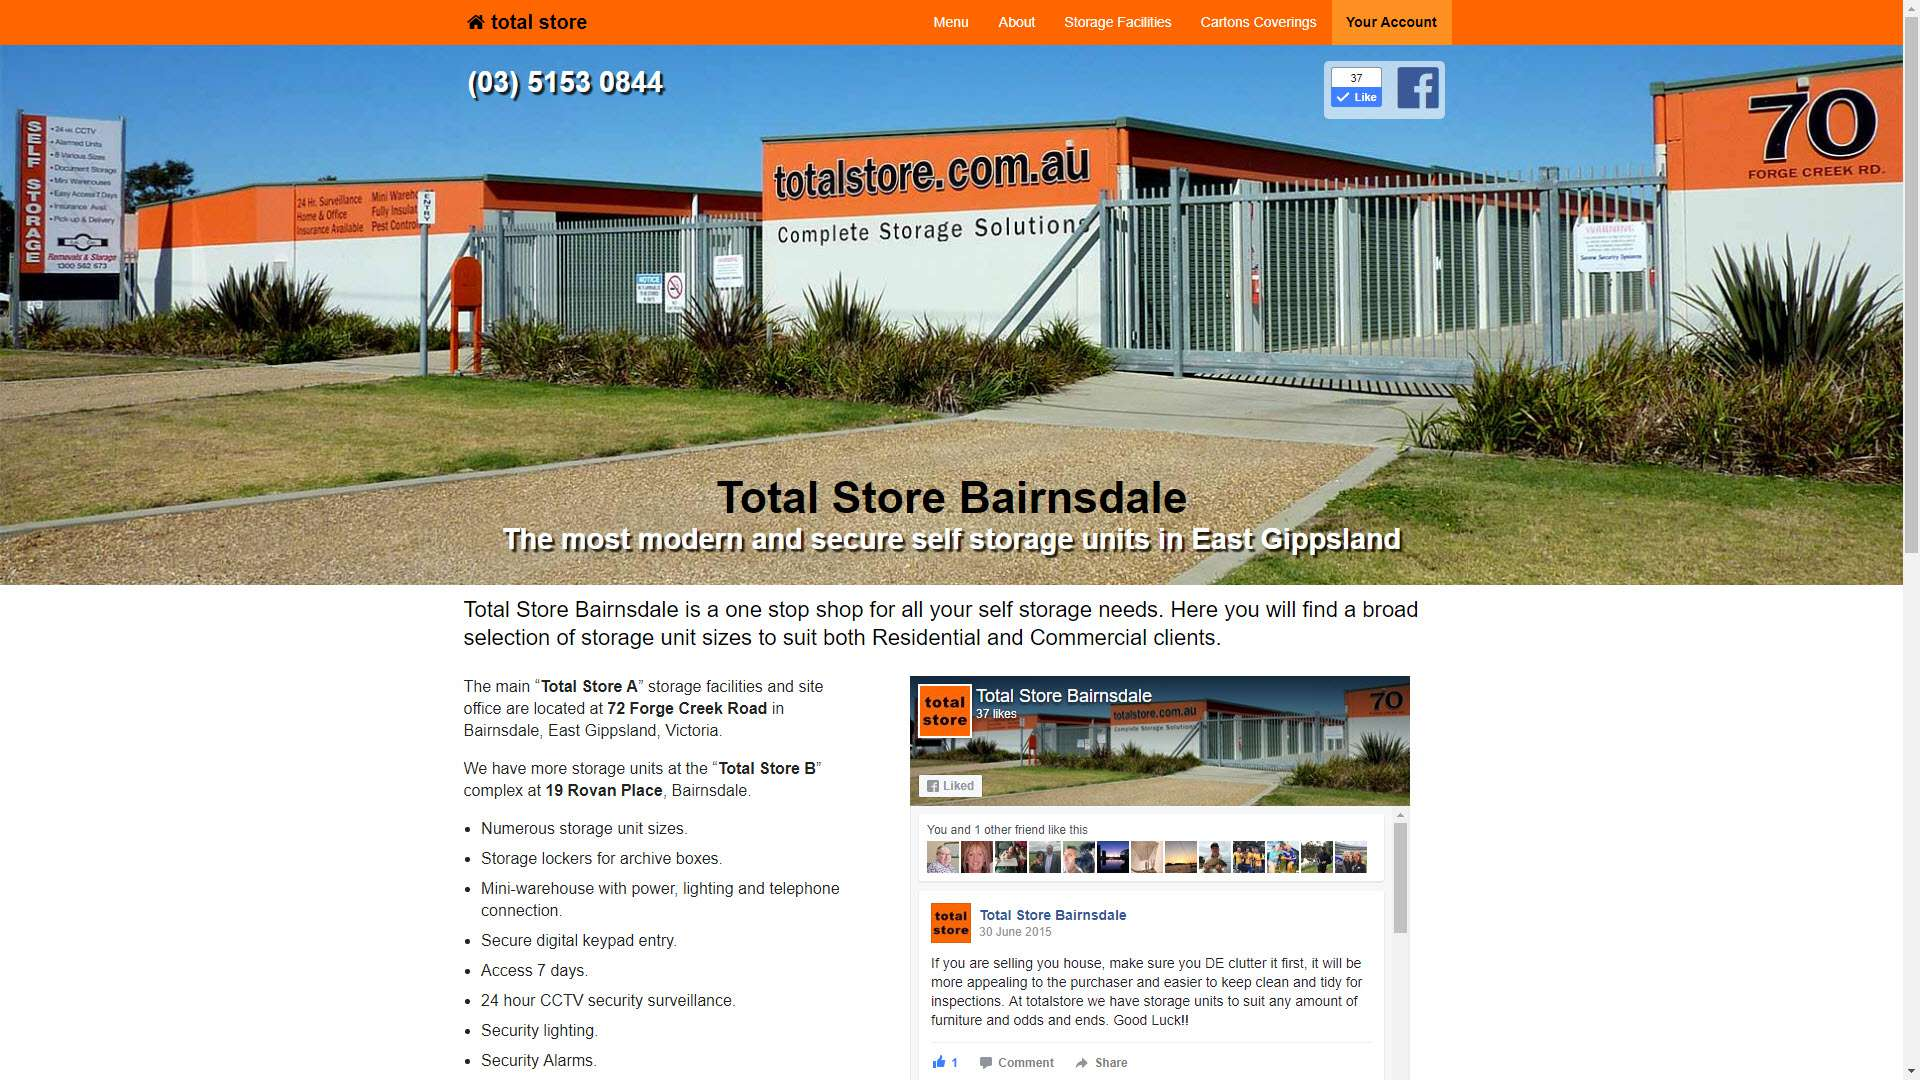 Total Store, Bairnsdale website